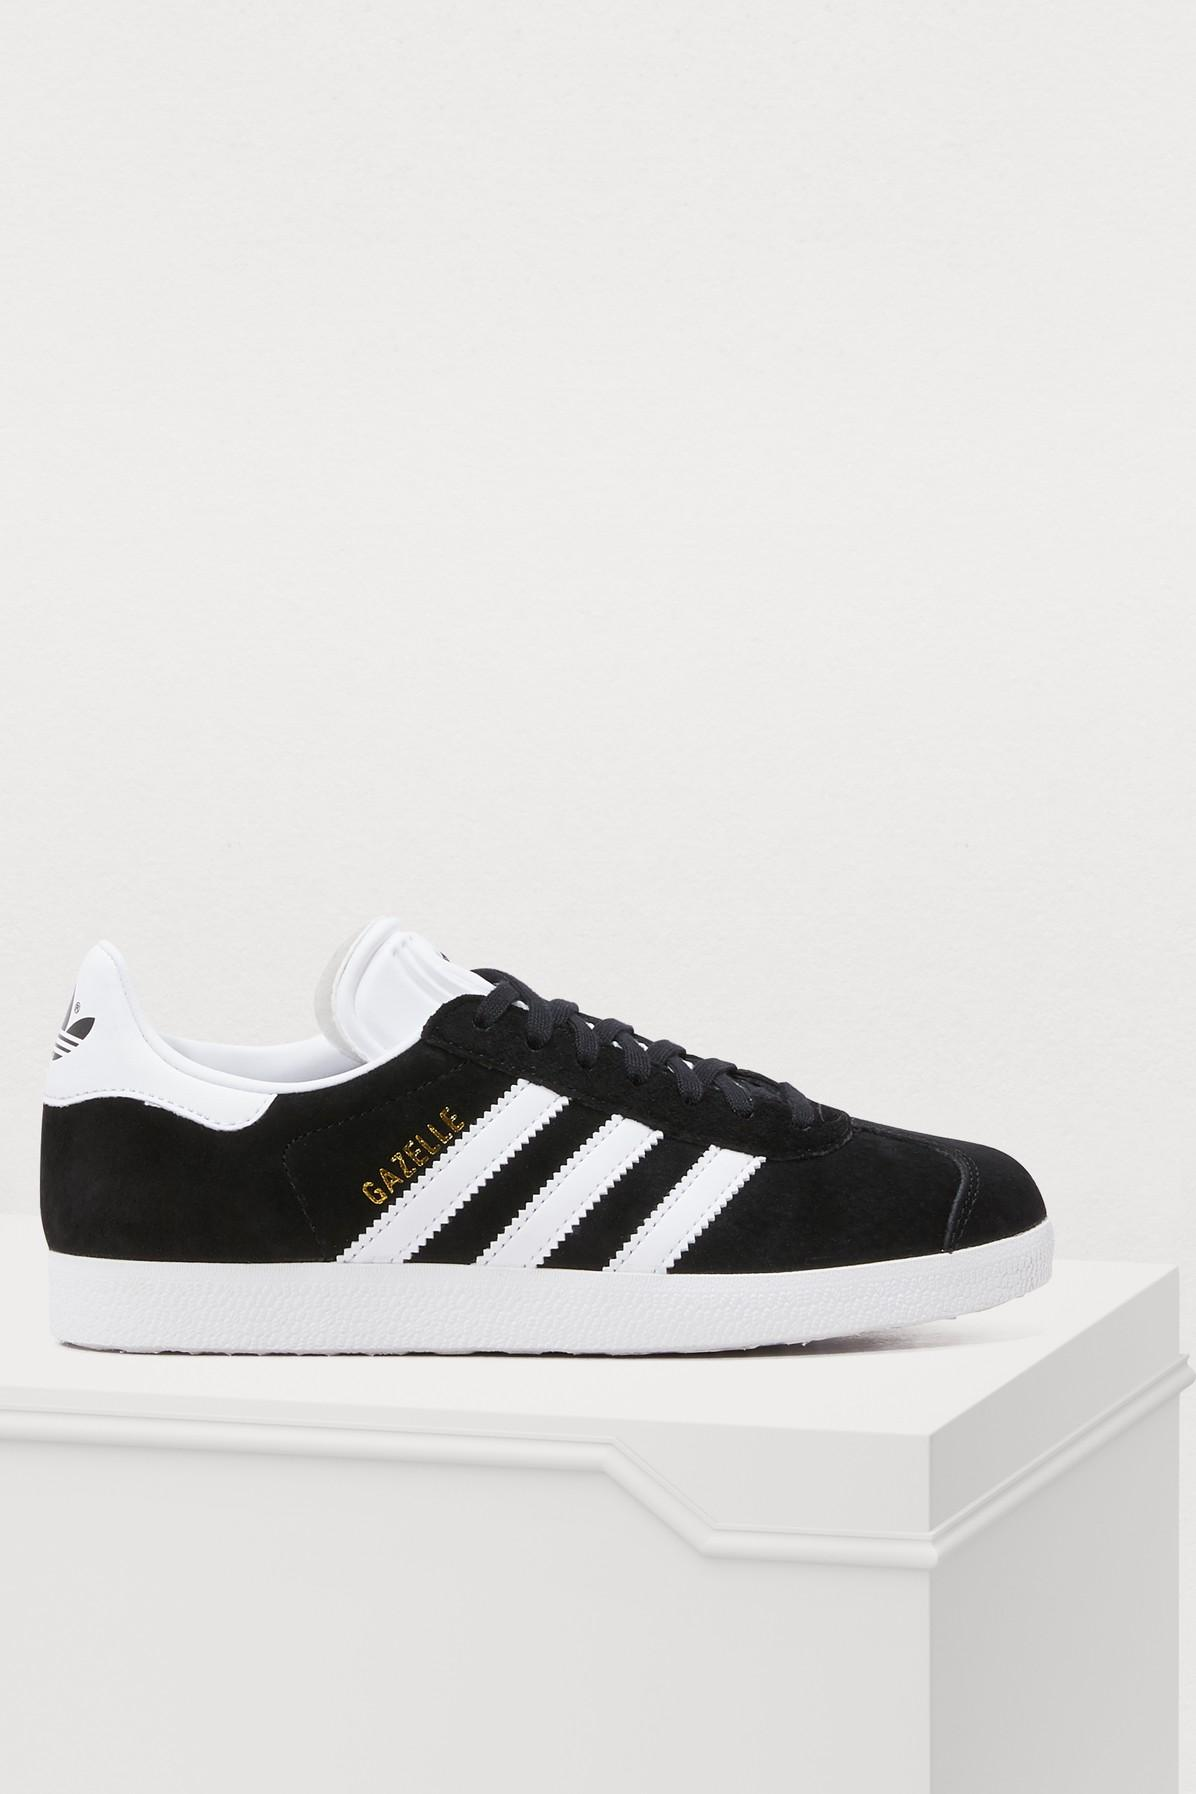 new product bd5b9 a1f8c Adidas Originals Adidas Men s Gazelle Sport Pack Casual Sneakers From  Finish Line In Black